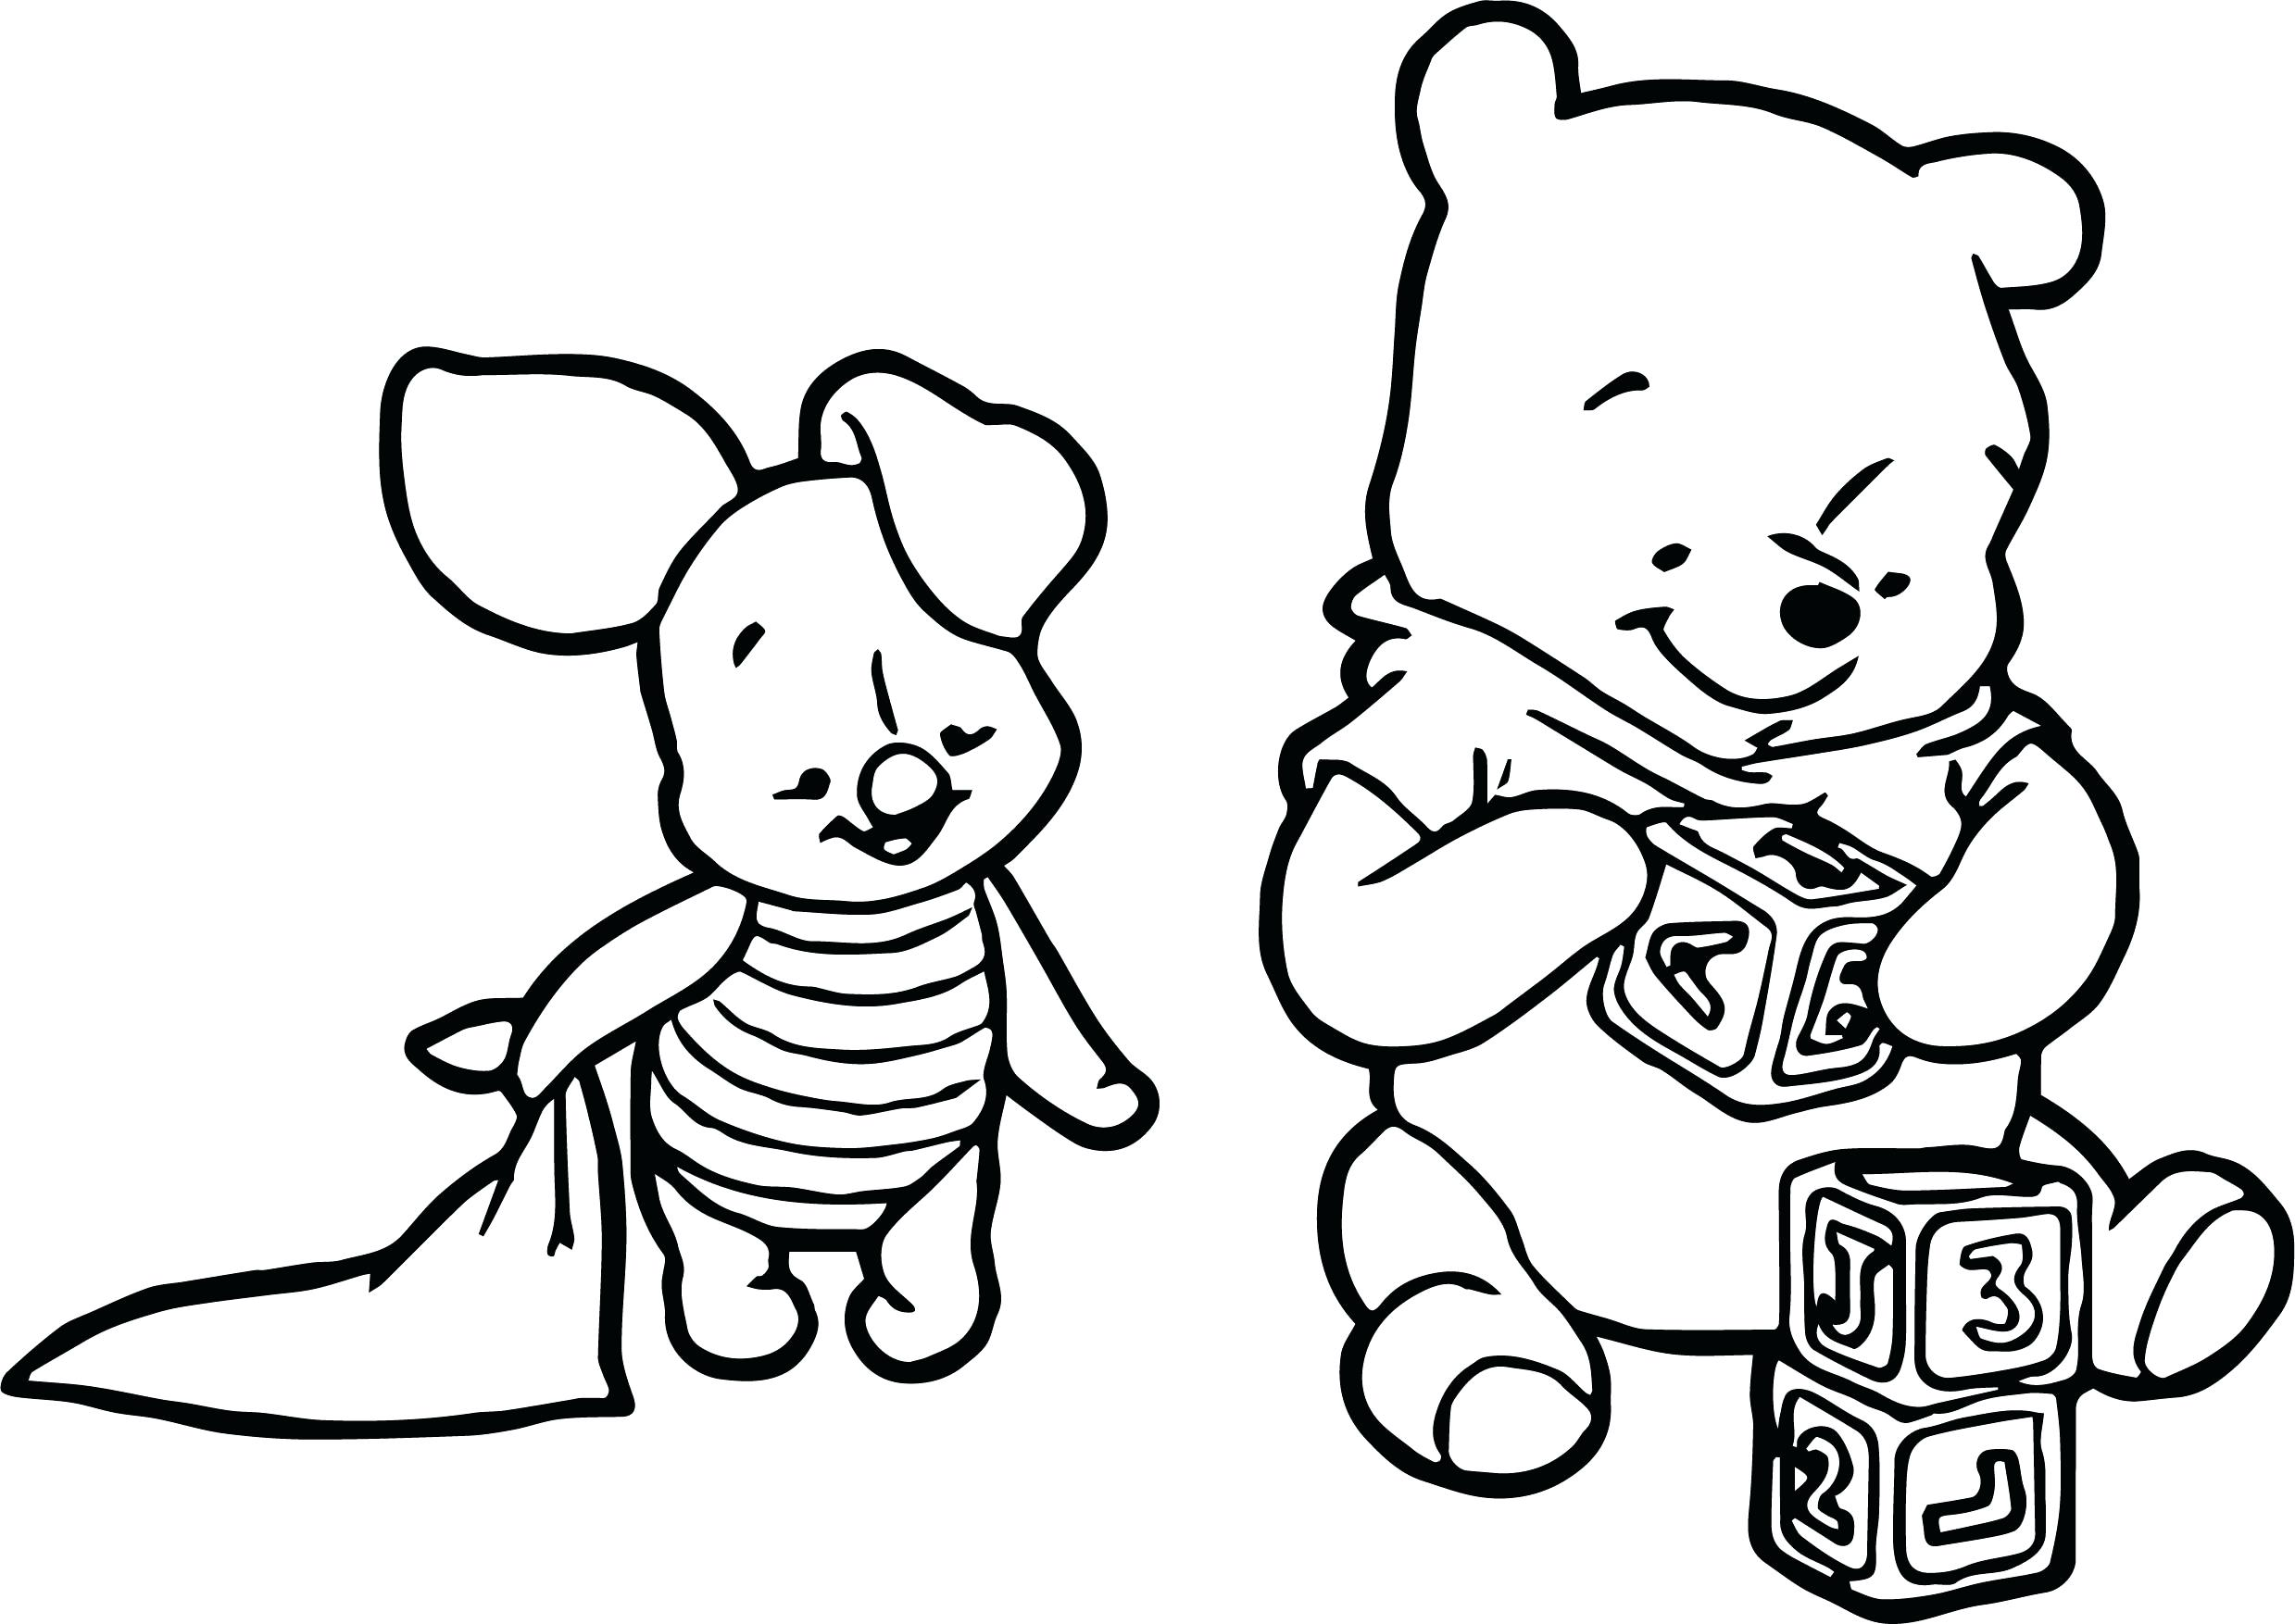 2478x1754 Sesame Street Elmo Play Volleyball Coloring Page Pages Online